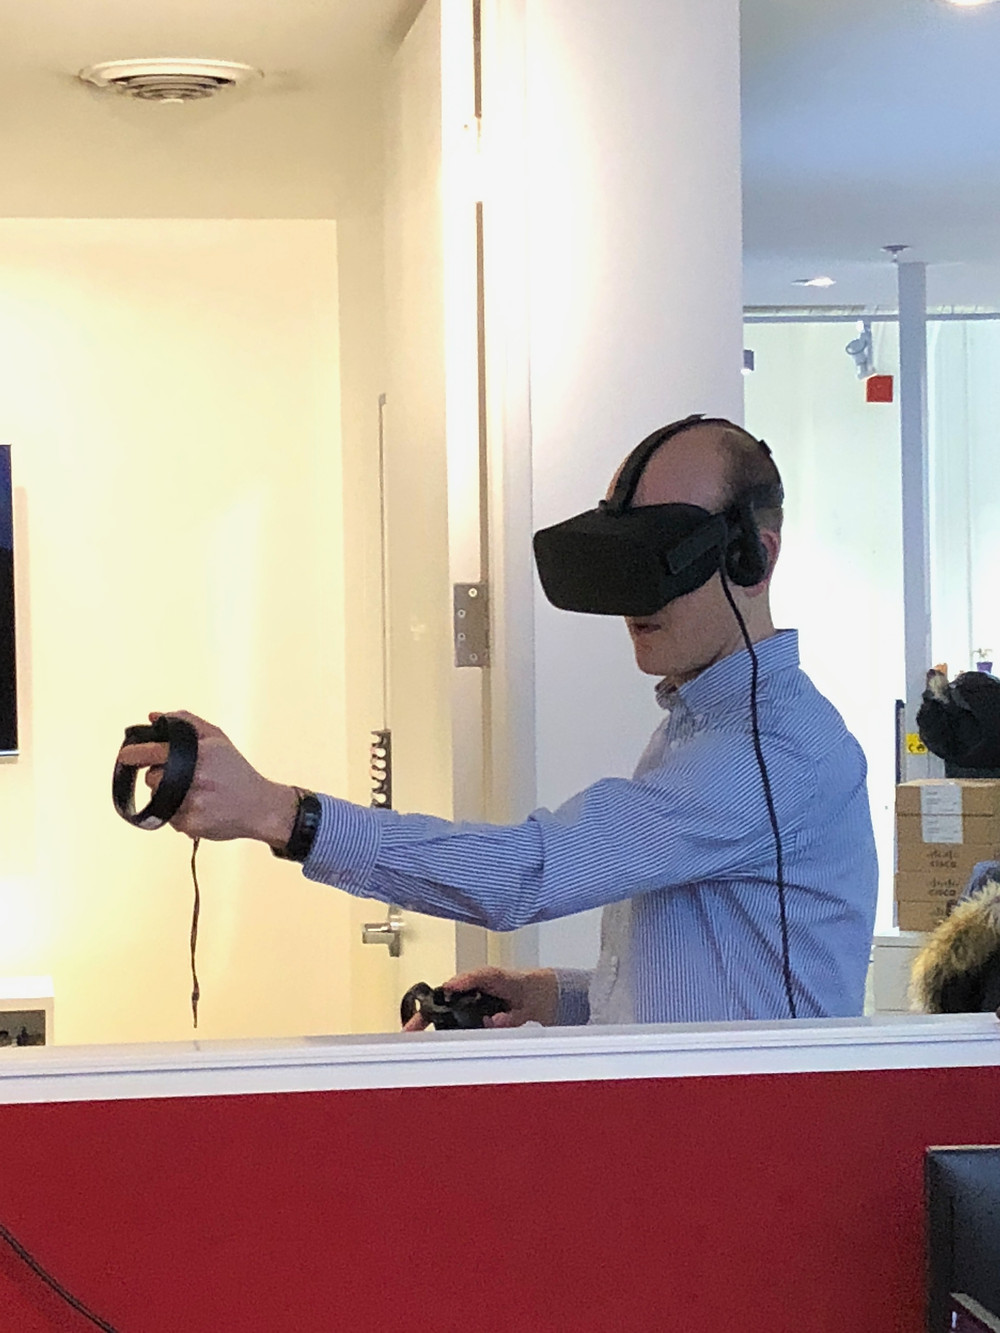 More VR